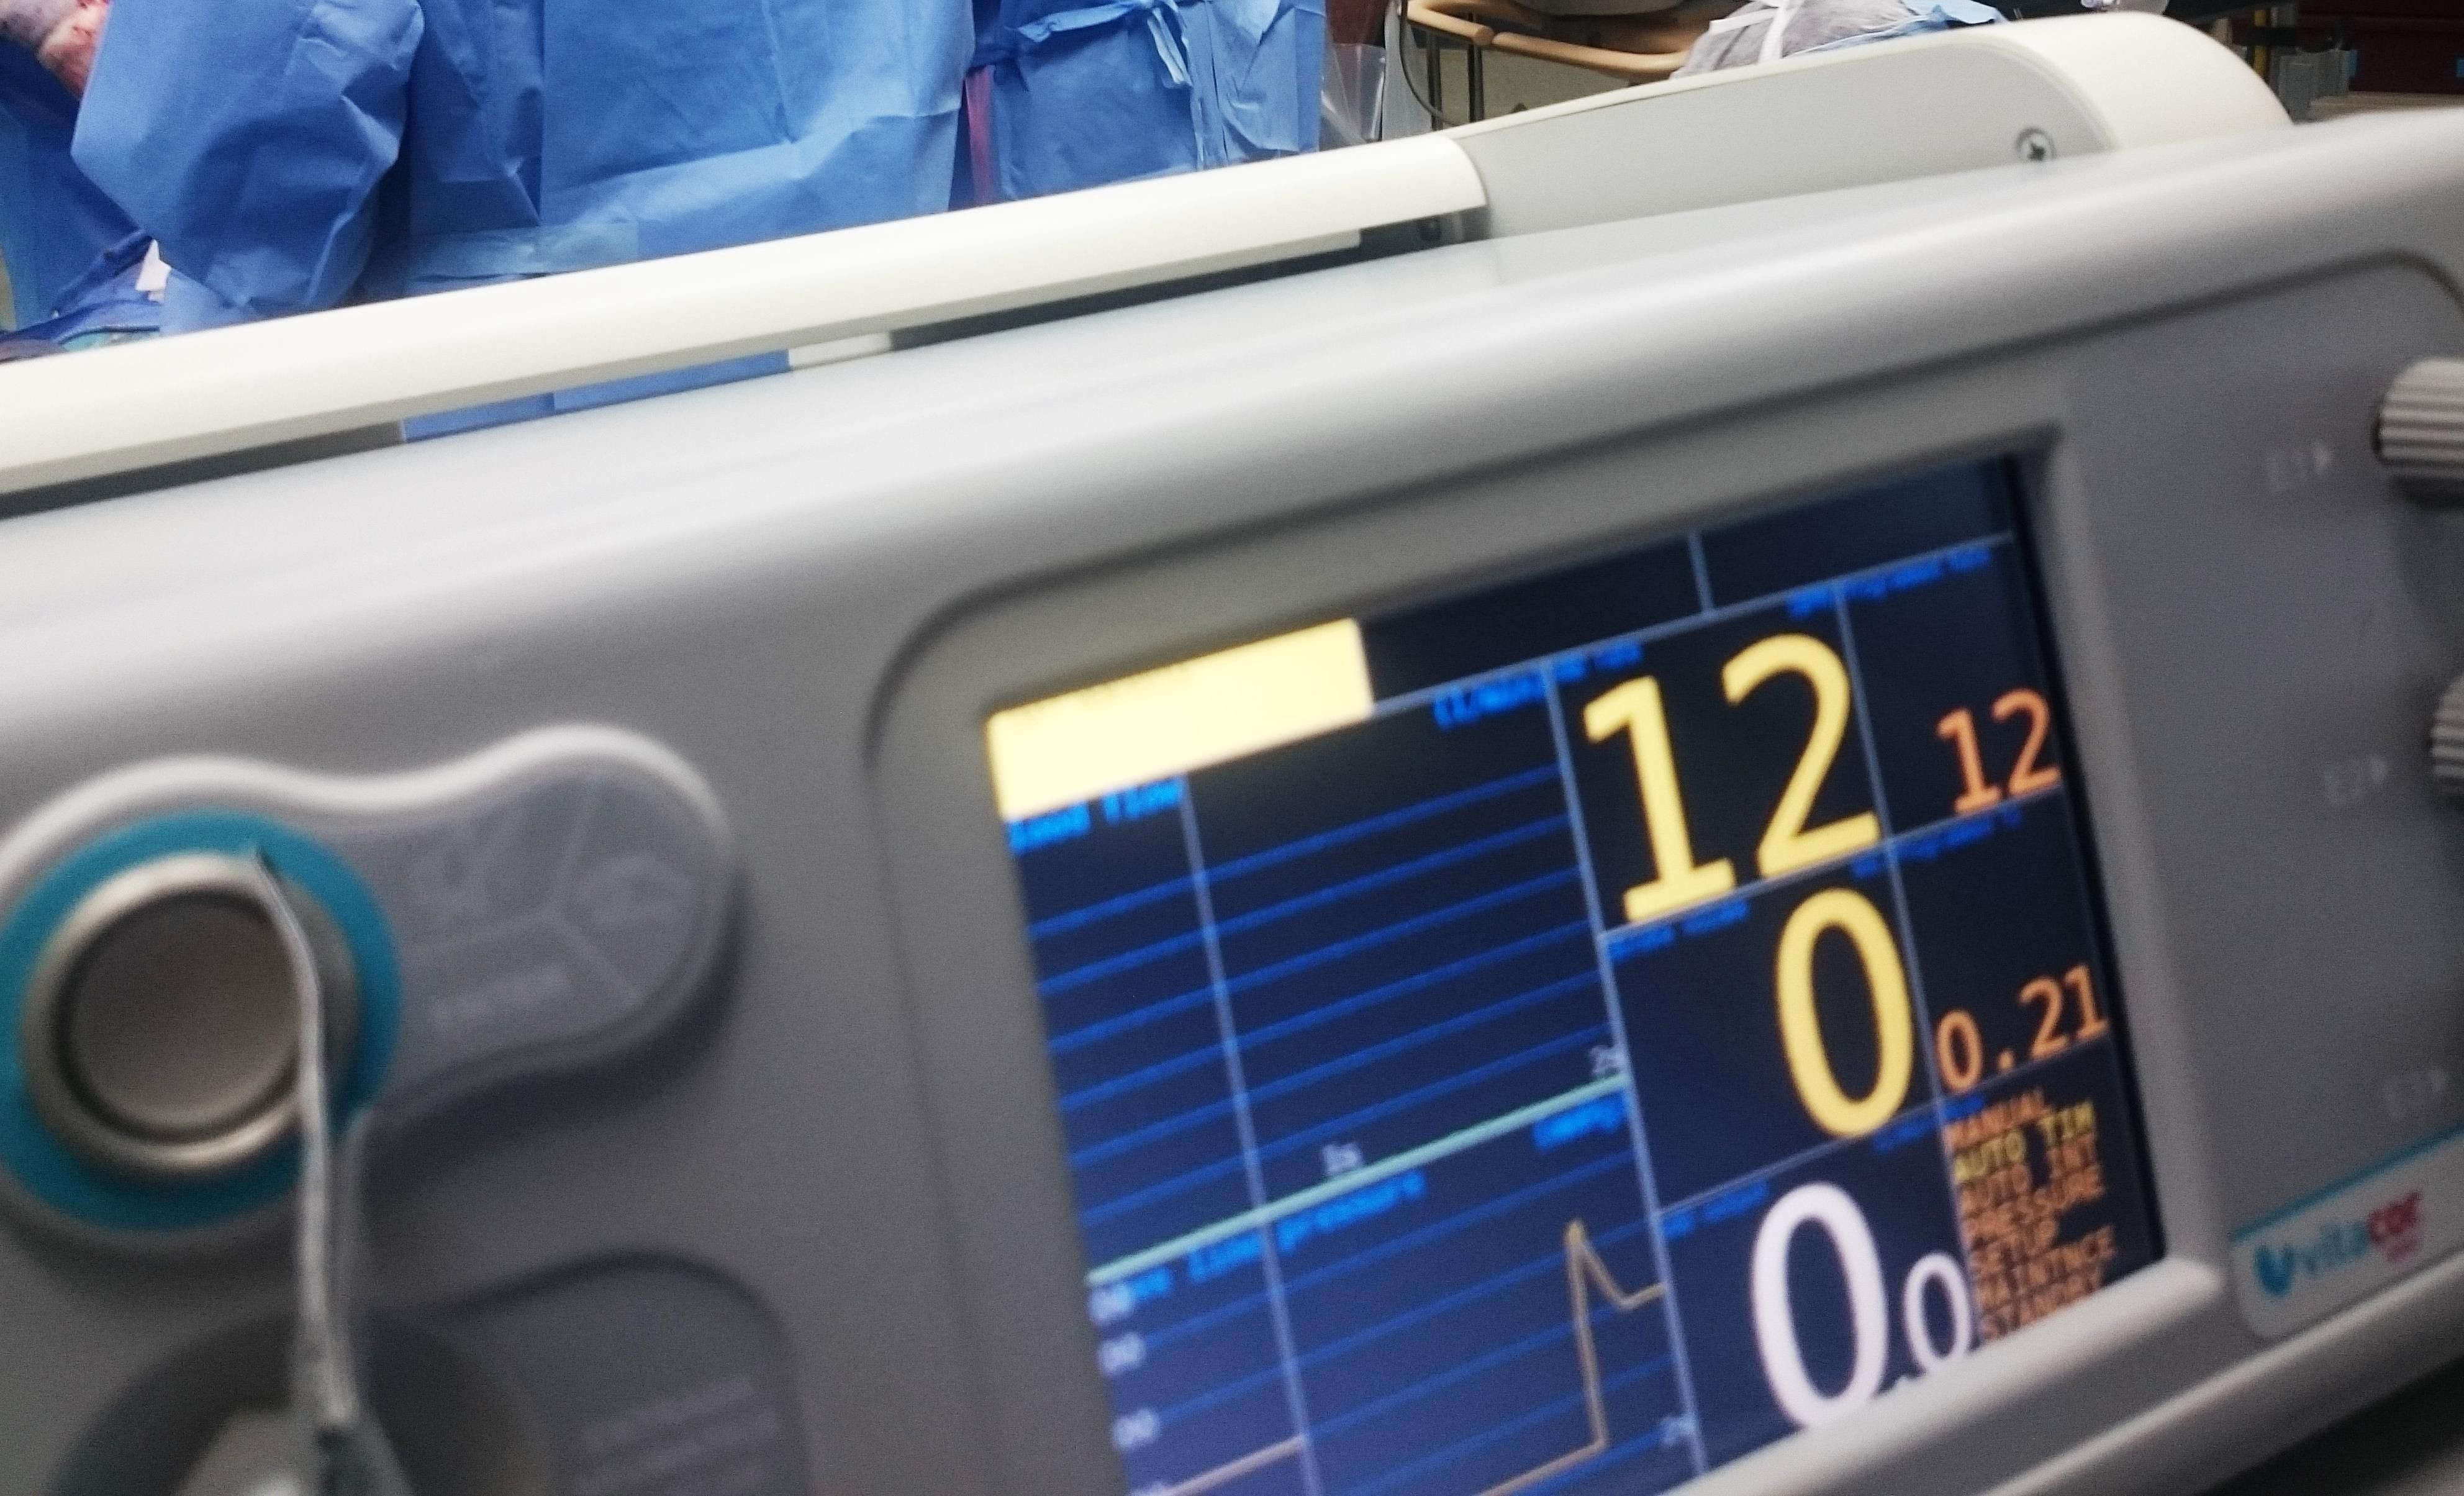 /linux-os-is-best-for-medical-devices-rcy32bq feature image